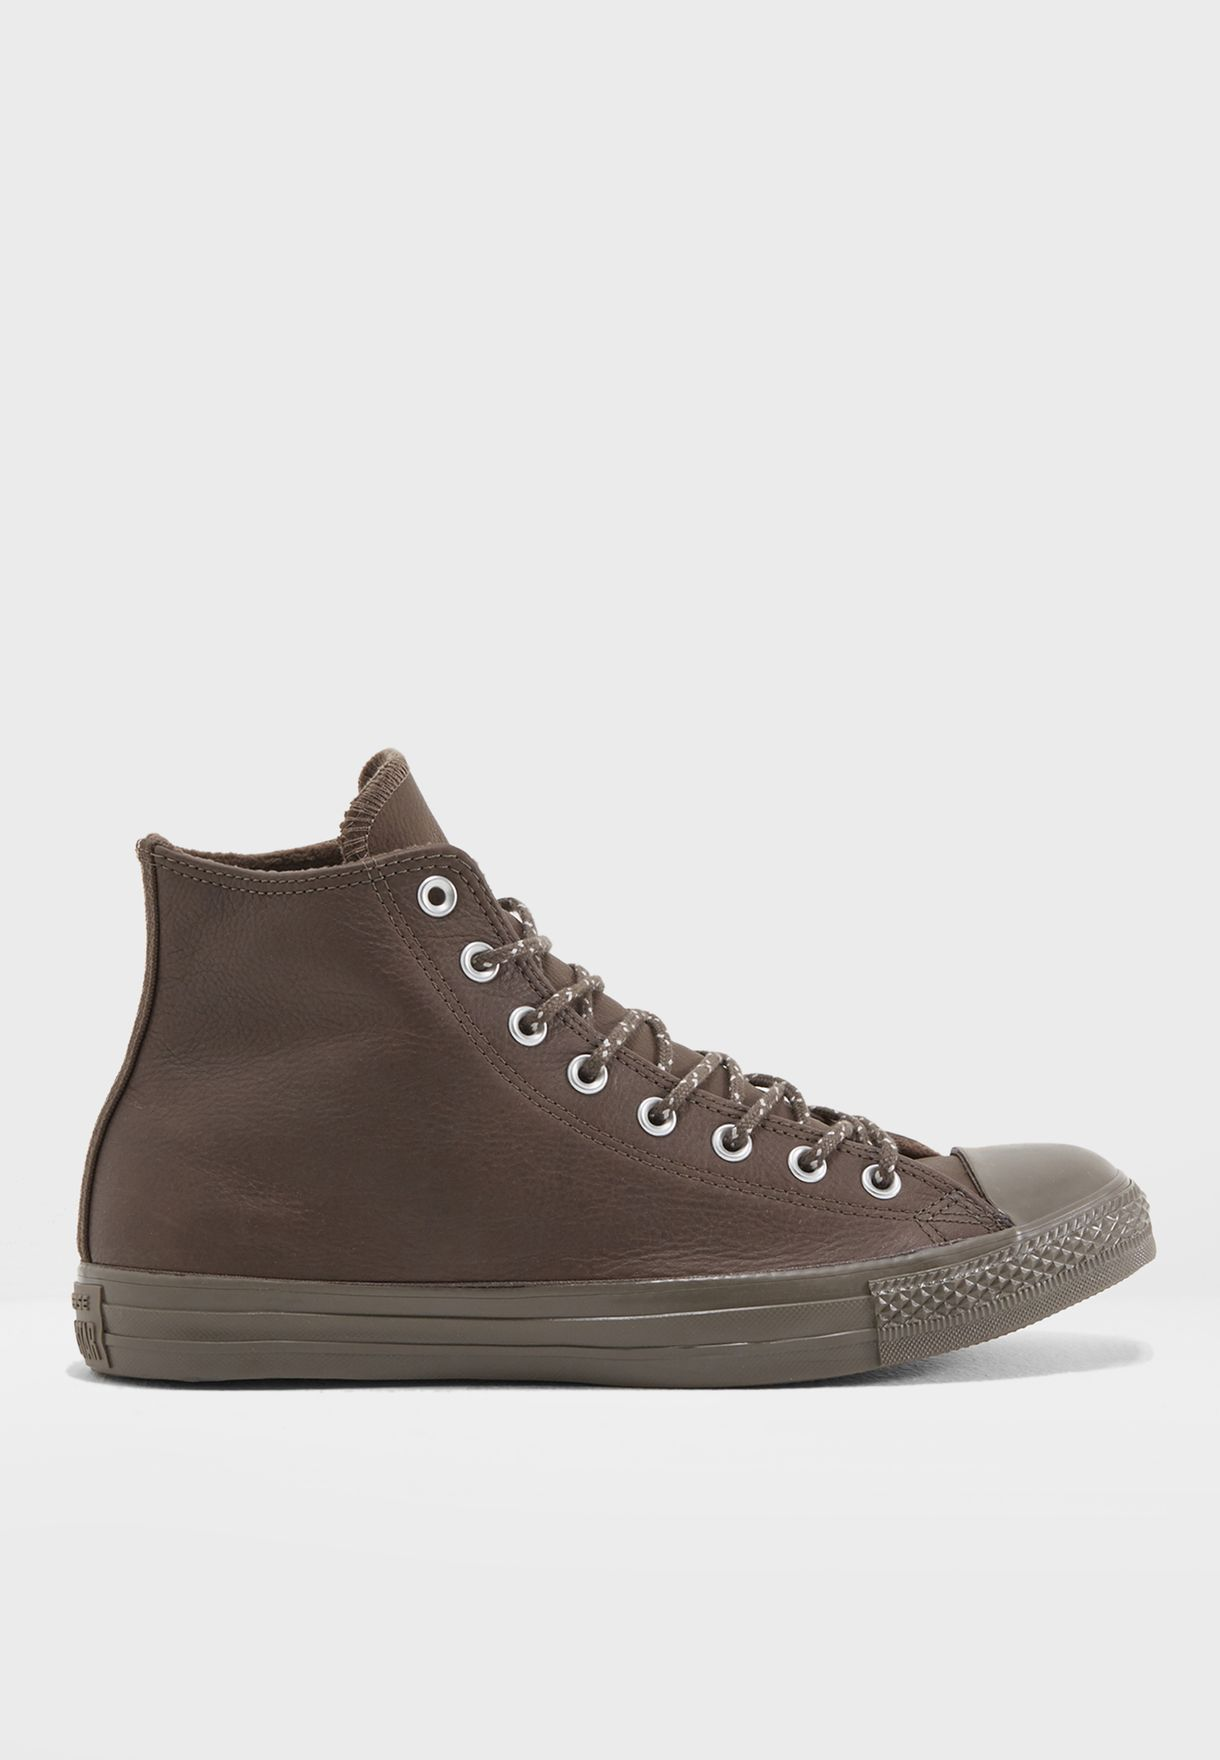 8b0a0770c8c3 Shop Converse browns Chuck Taylor All Star CN157513C-210 for Men in ...